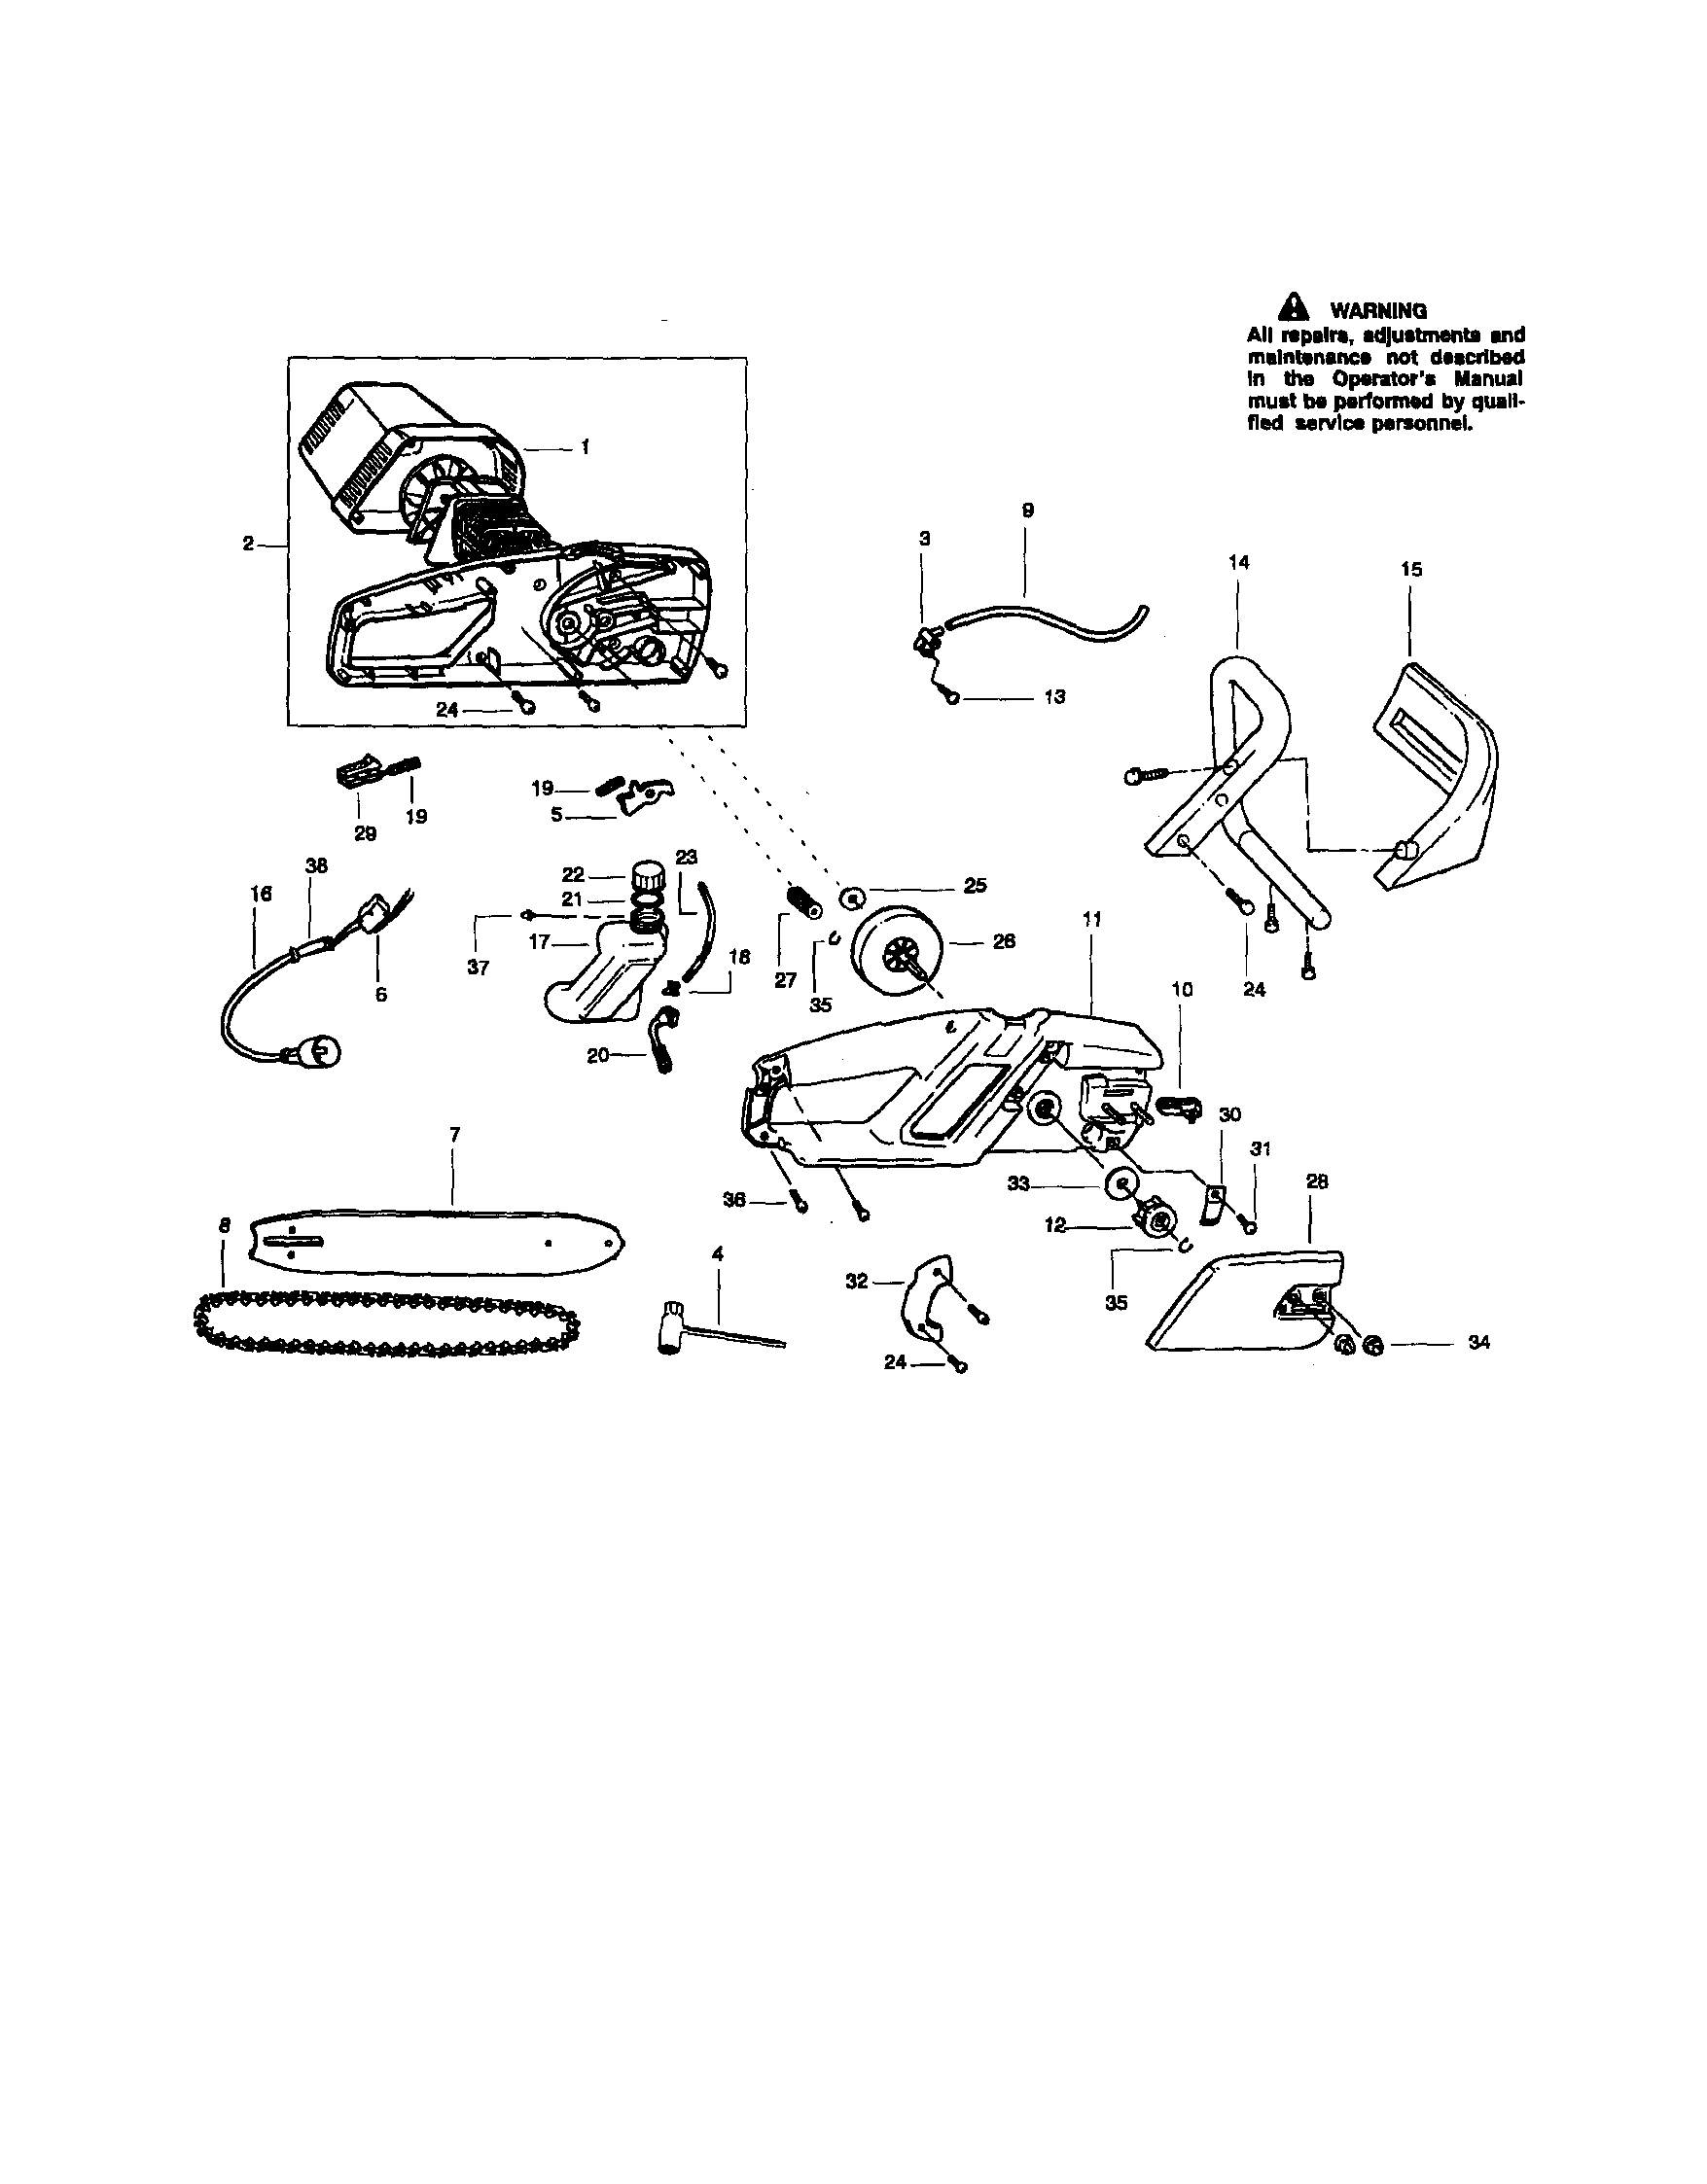 craftsman chainsaw carburetor diagram est smoke detector wiring husqvarna 435 parts free